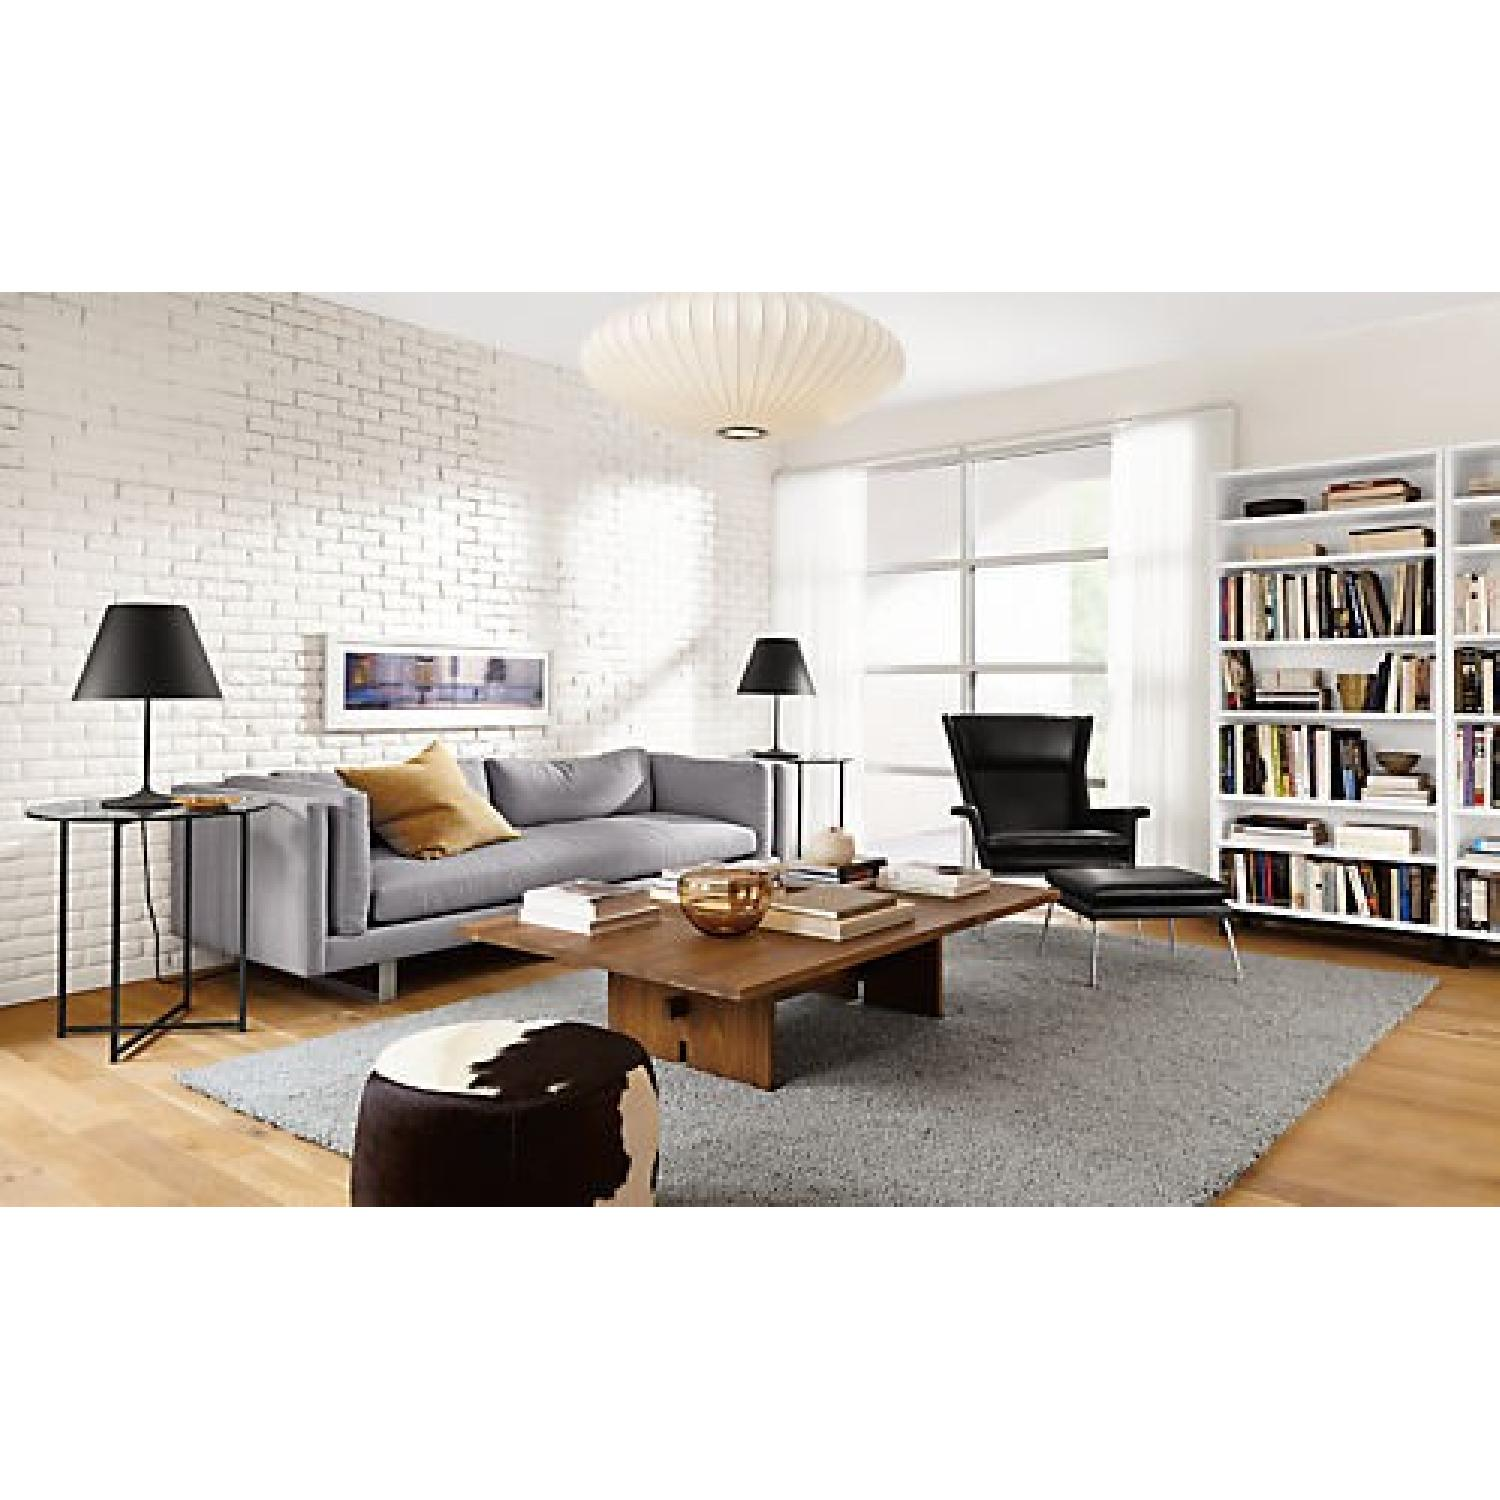 Room & Board Lind Cowhide Round Ottomans - image-1